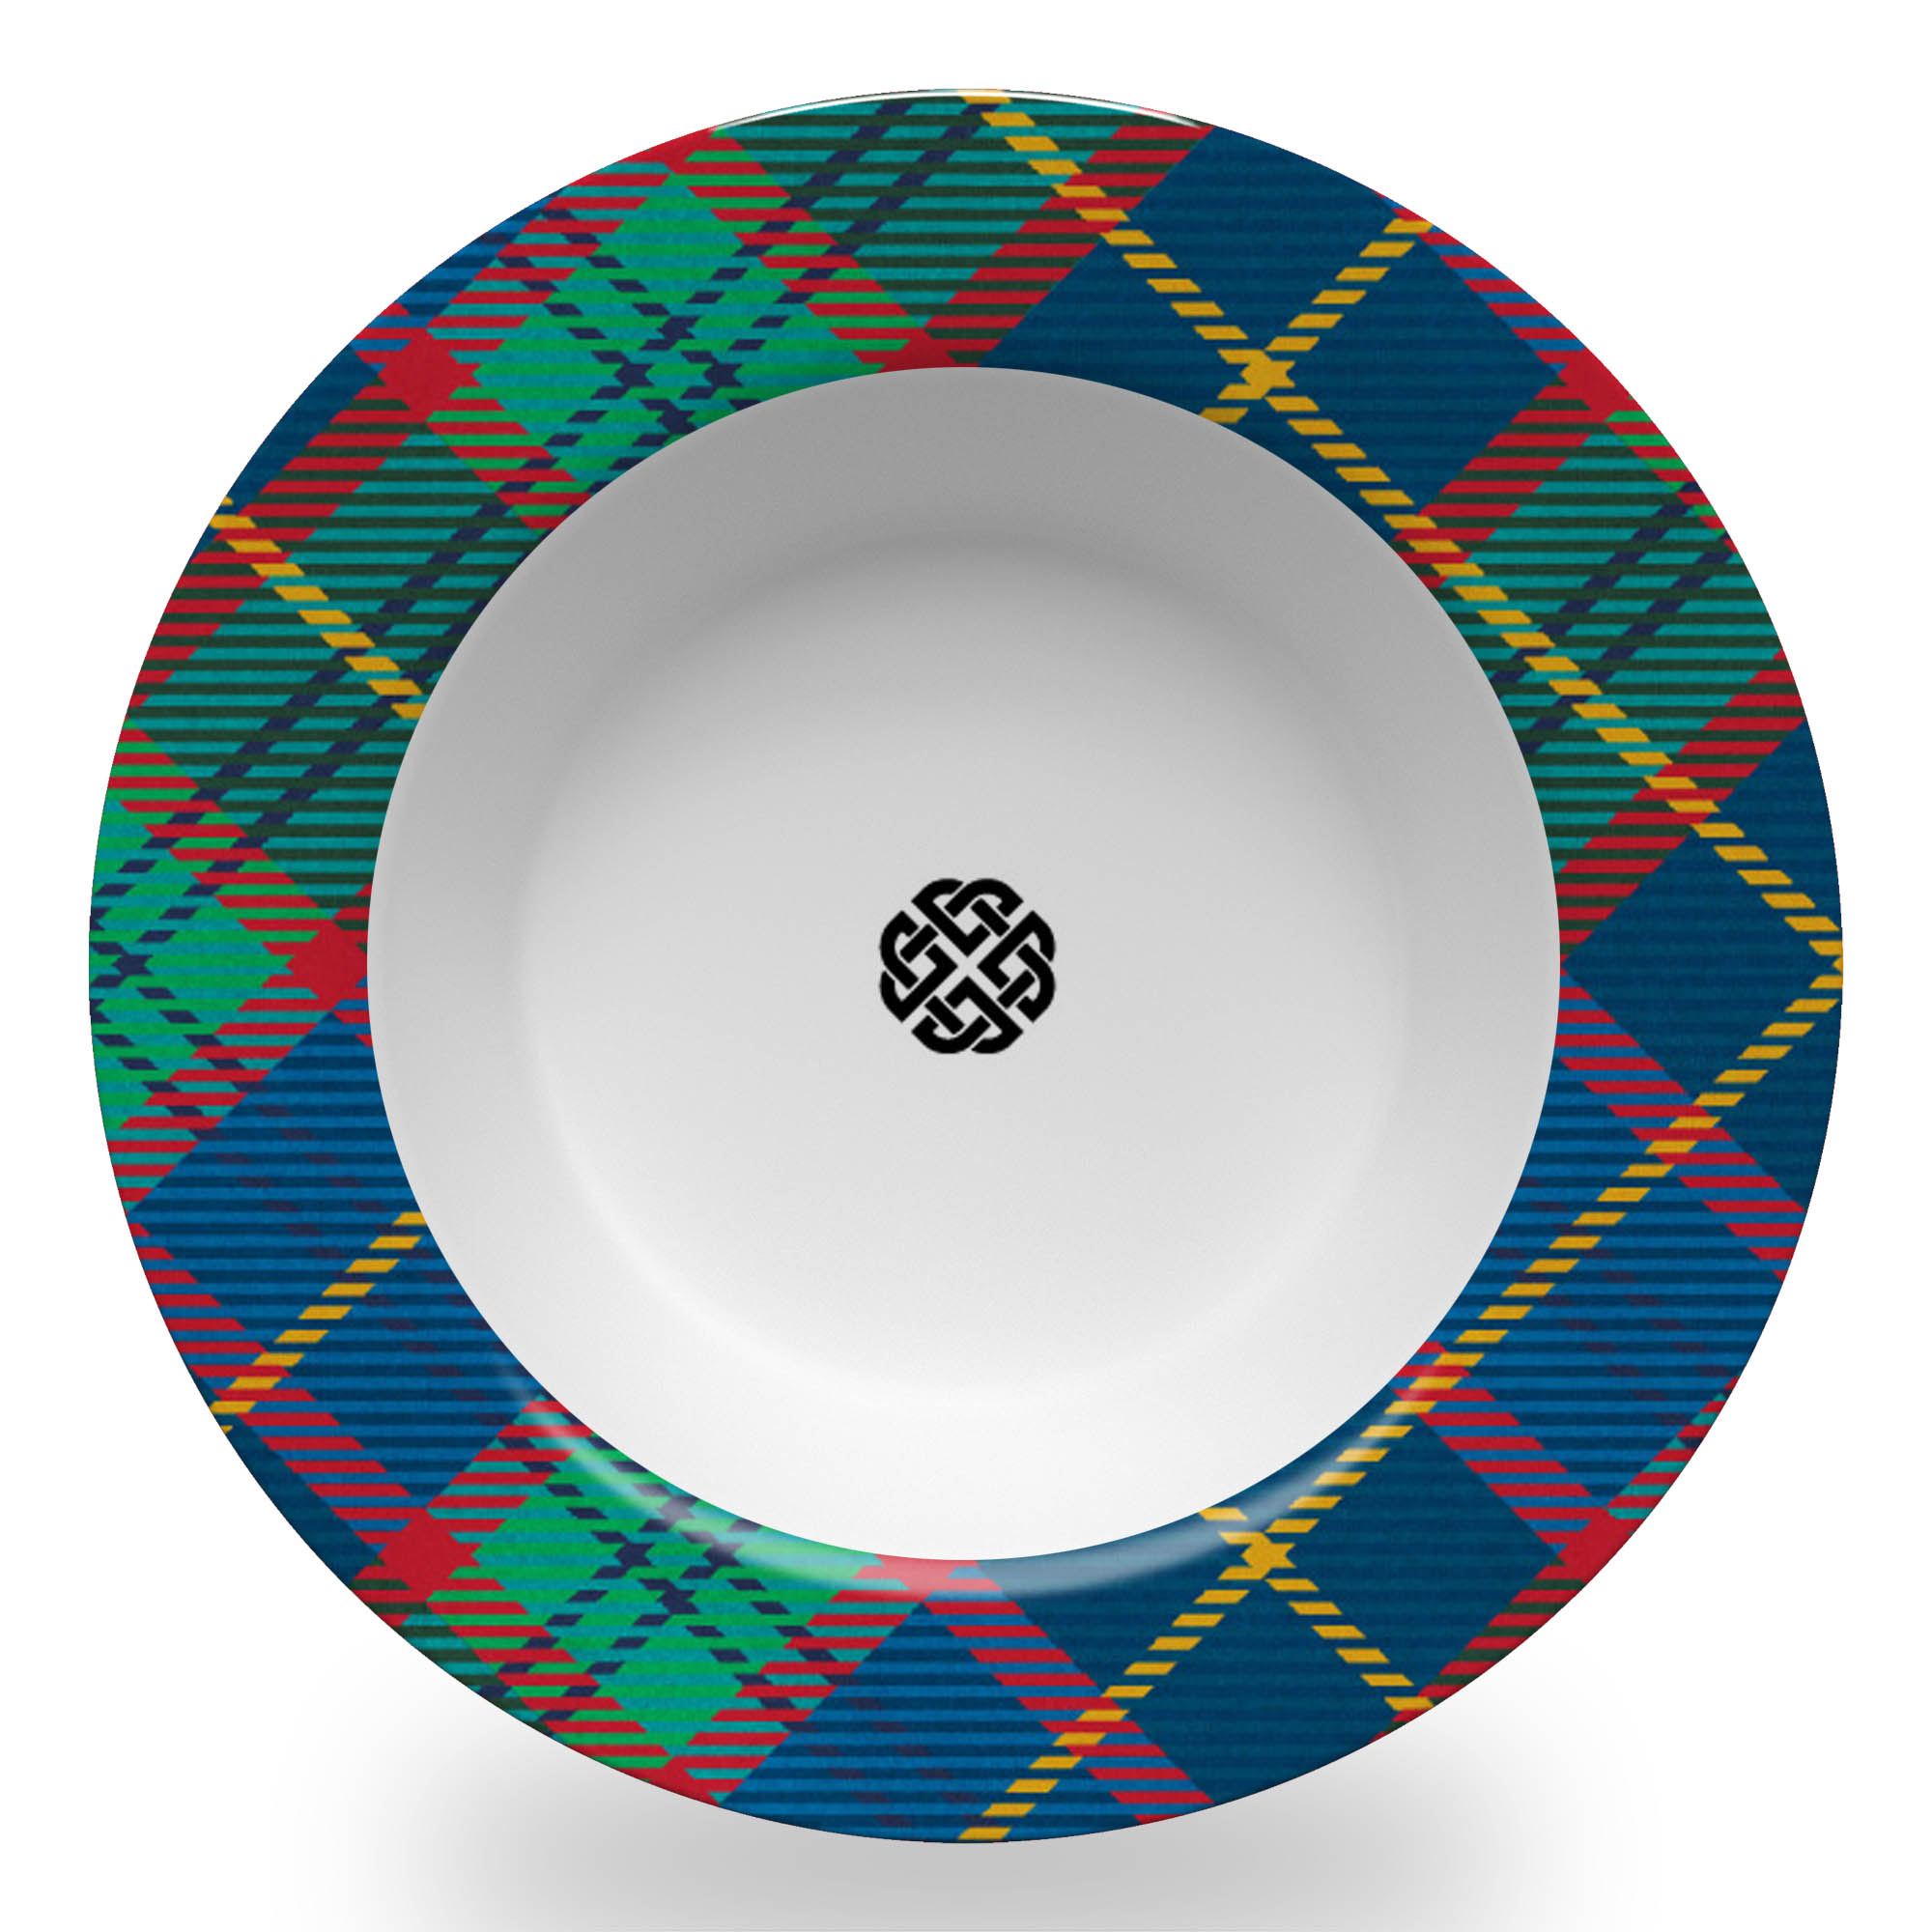 Tartan Bowl with Celtic Knot